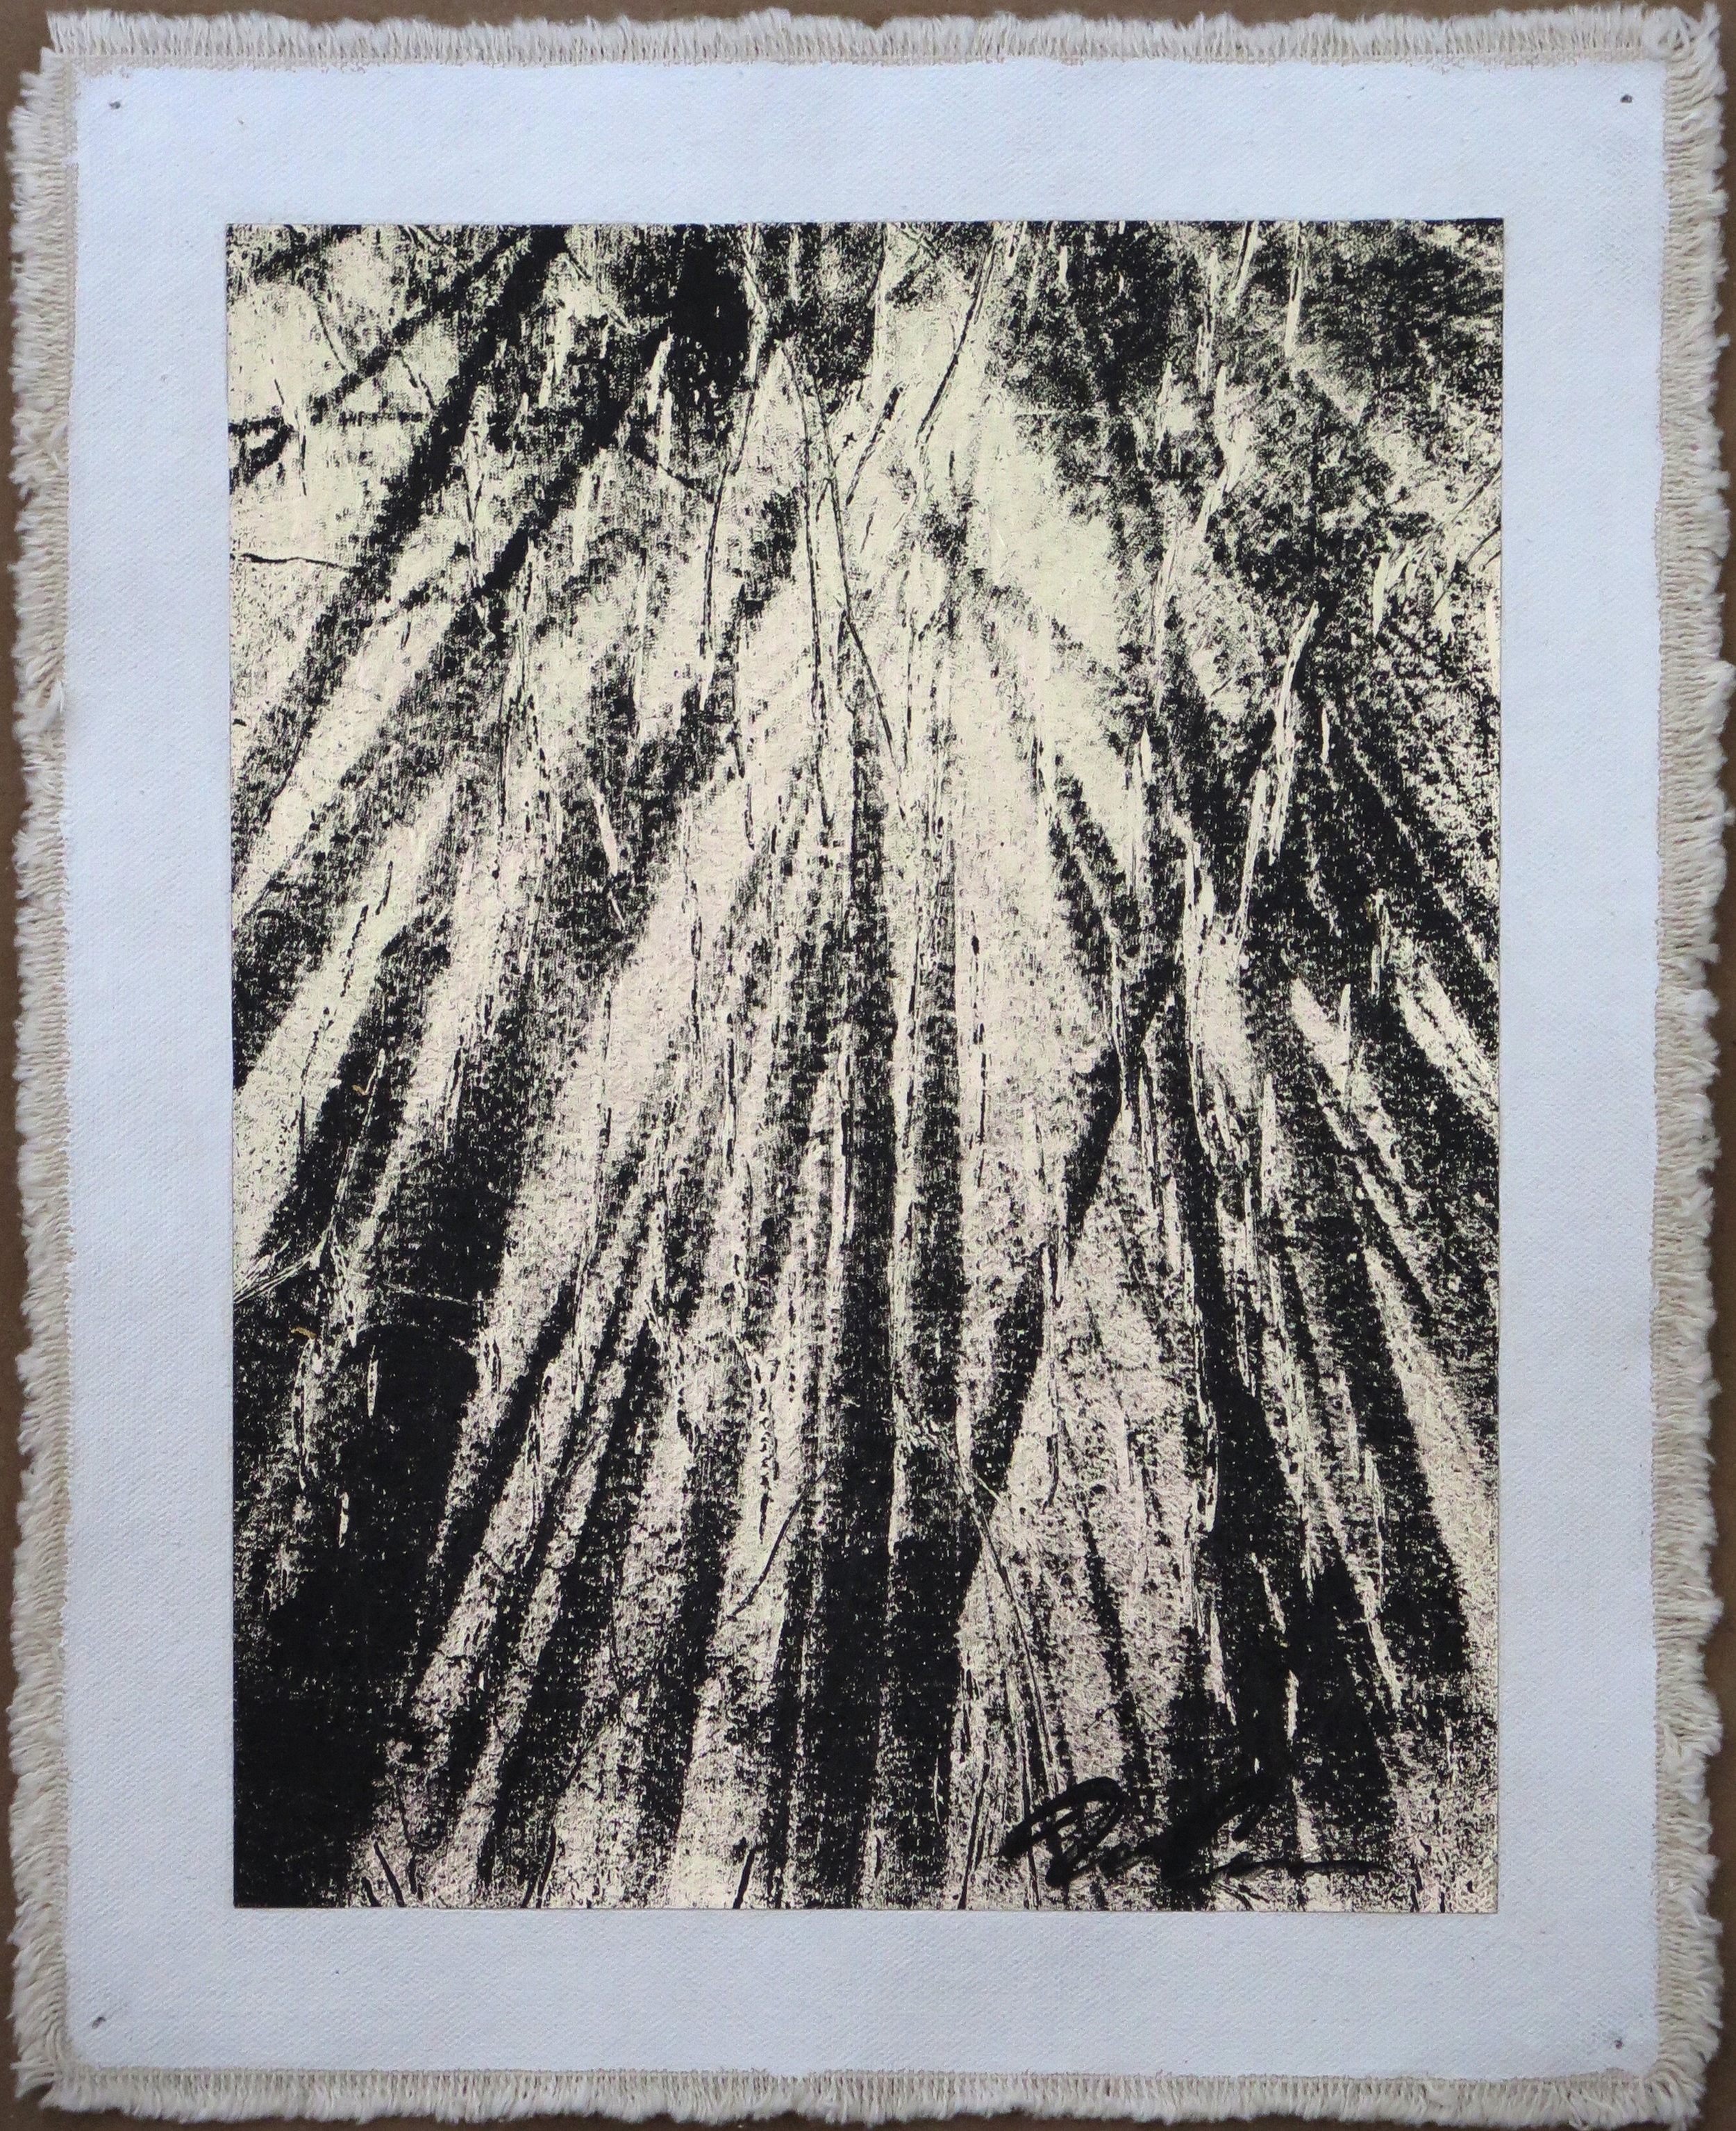 Bamboo Forest Canopy, Negative